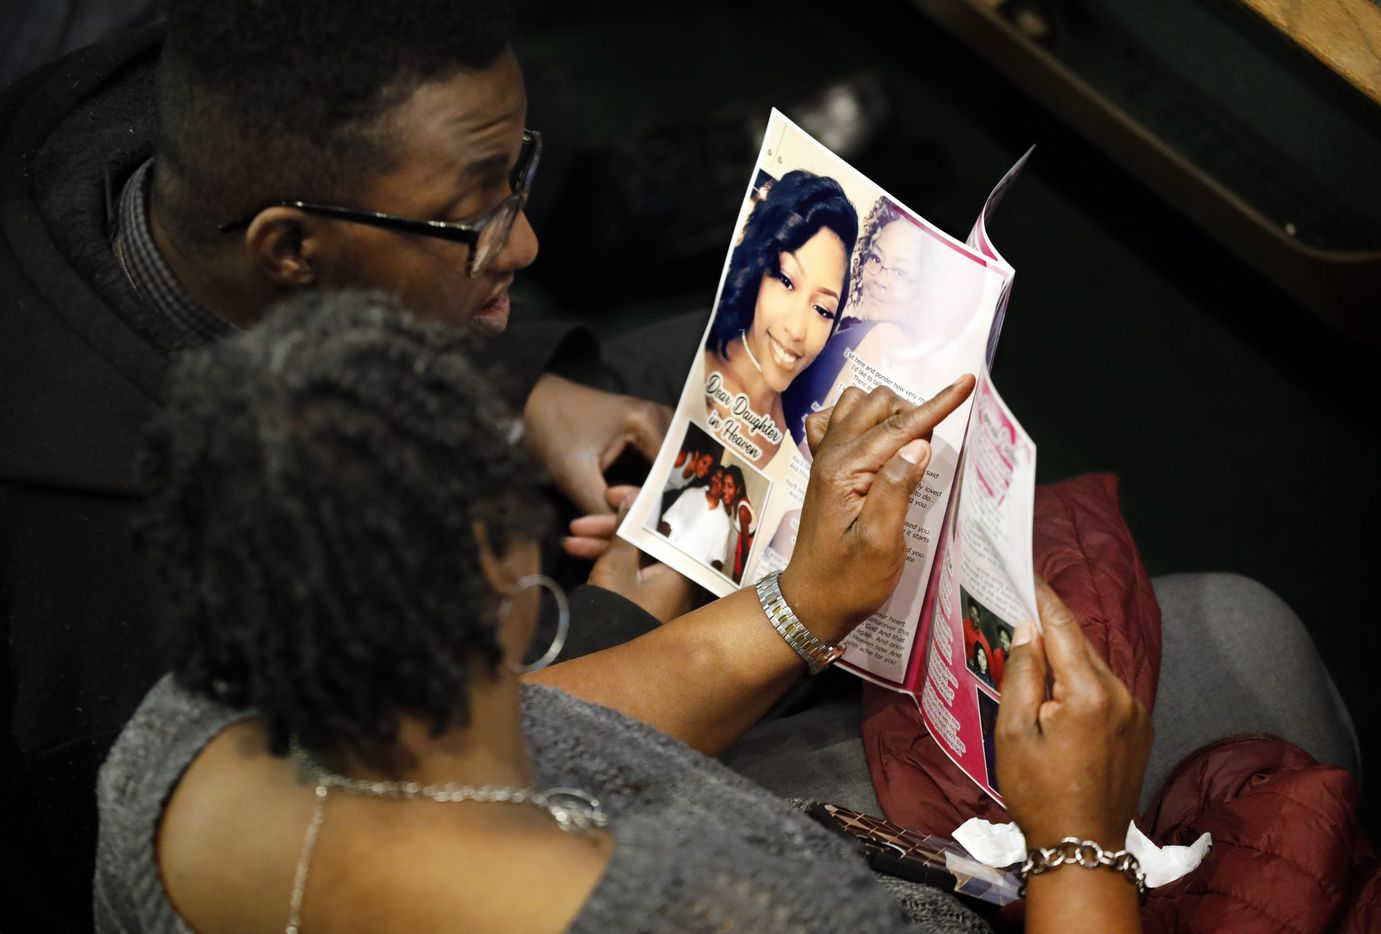 Mourners view photos of LaTiffiney Rodgers, 26, in the celebration of life program at her funeral service in CrossRoads Covenant Church in DeSoto, Texas, Saturday, February 22, 2020.